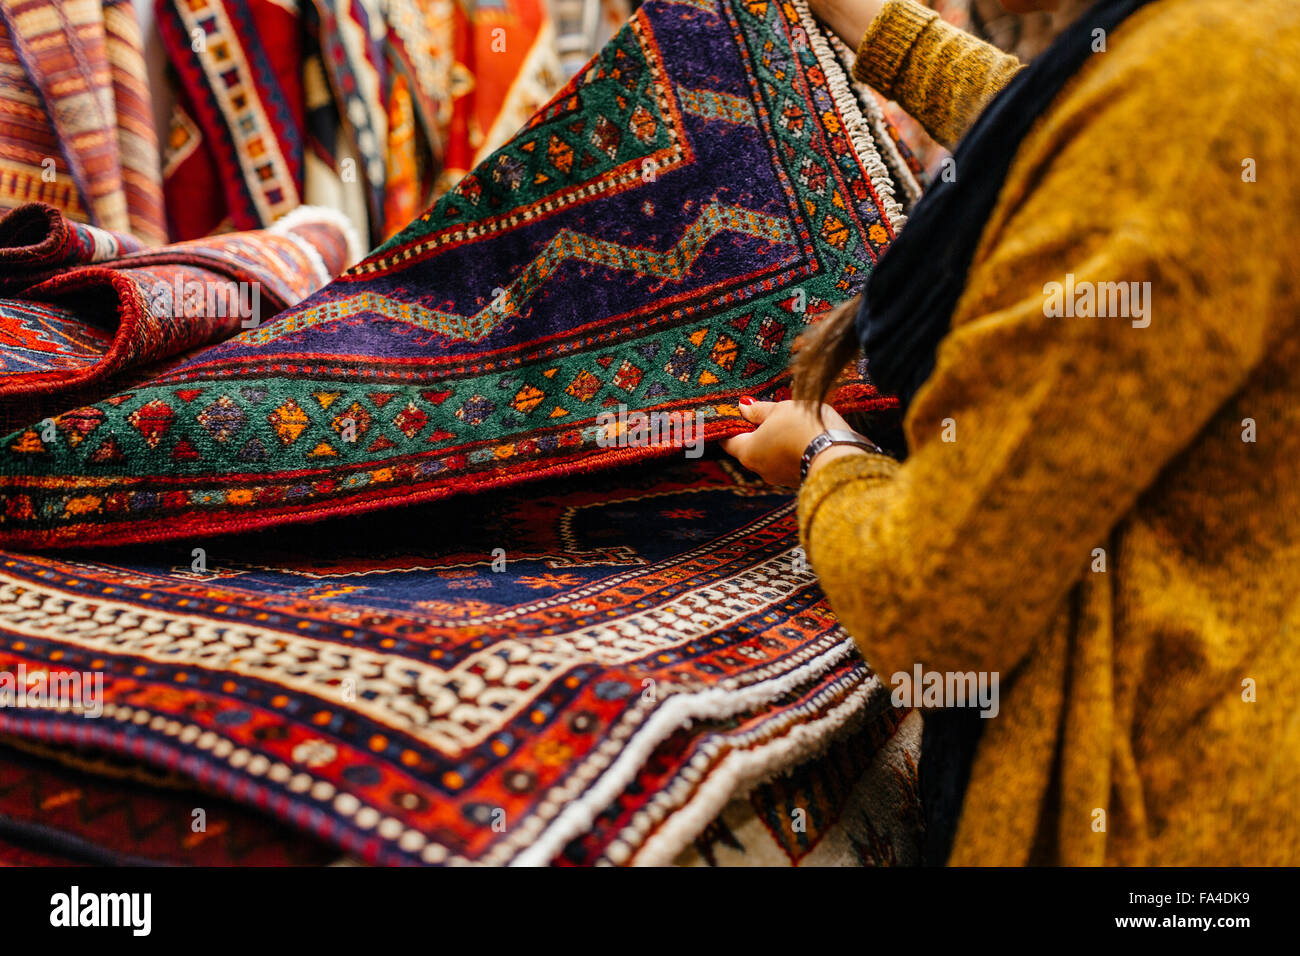 Midsection of young woman shopping for rugs in furniture warehouse - Stock Image